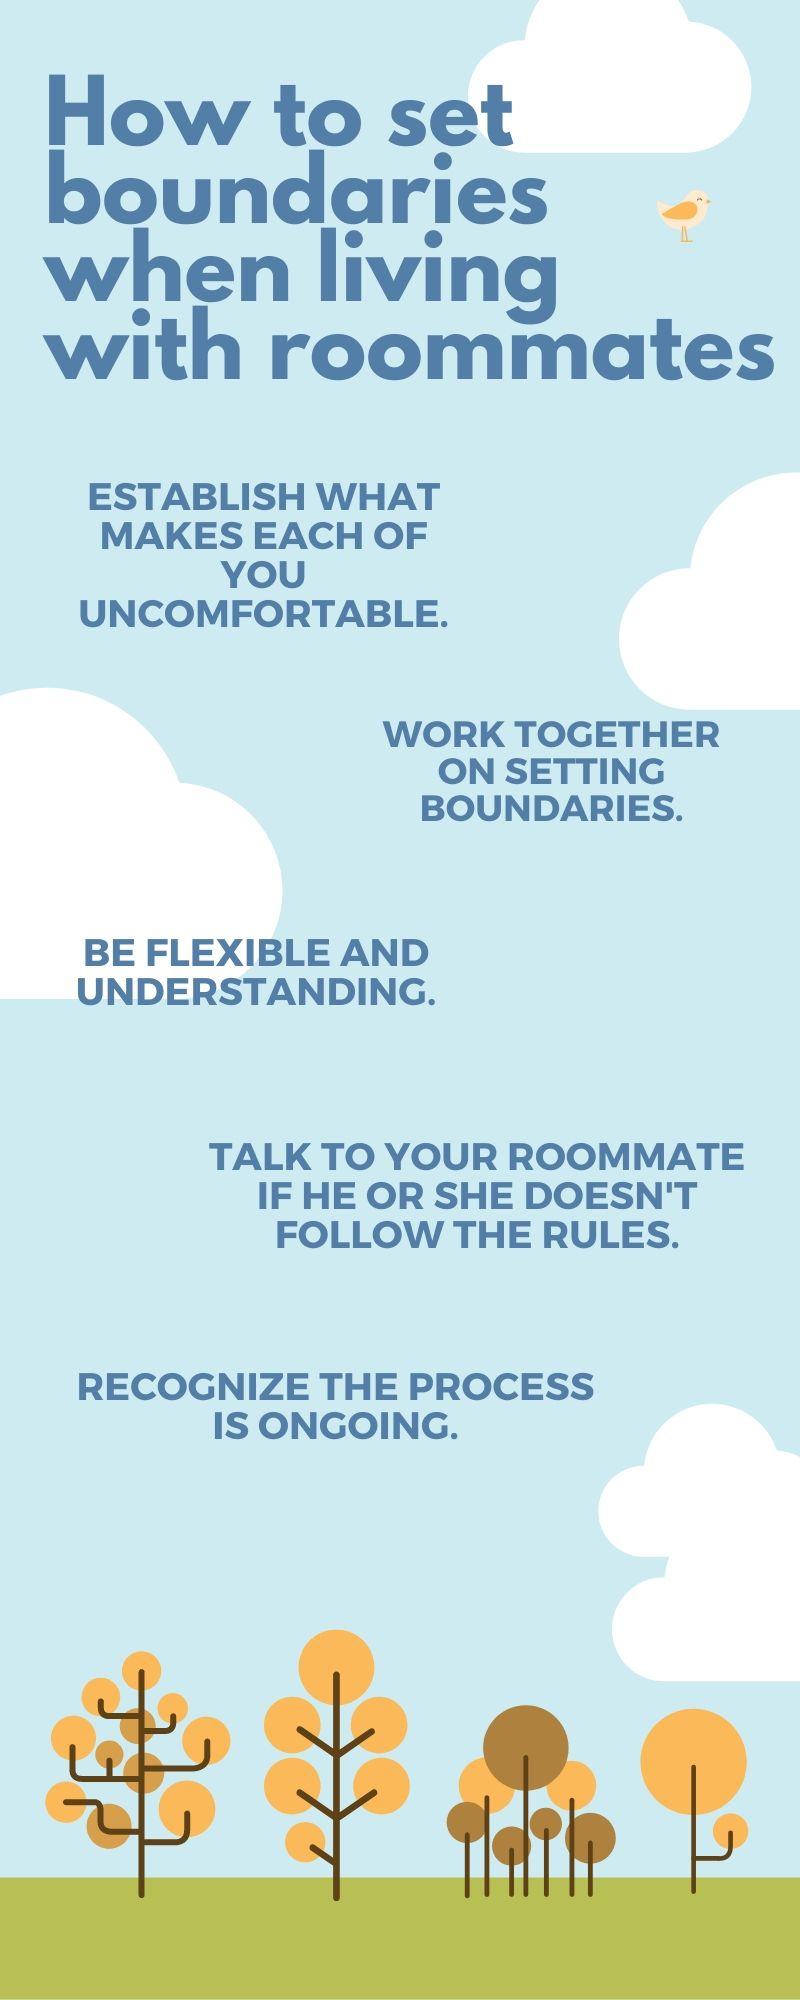 Roommate Finder: How to Set Boundaries When Living with Roommates